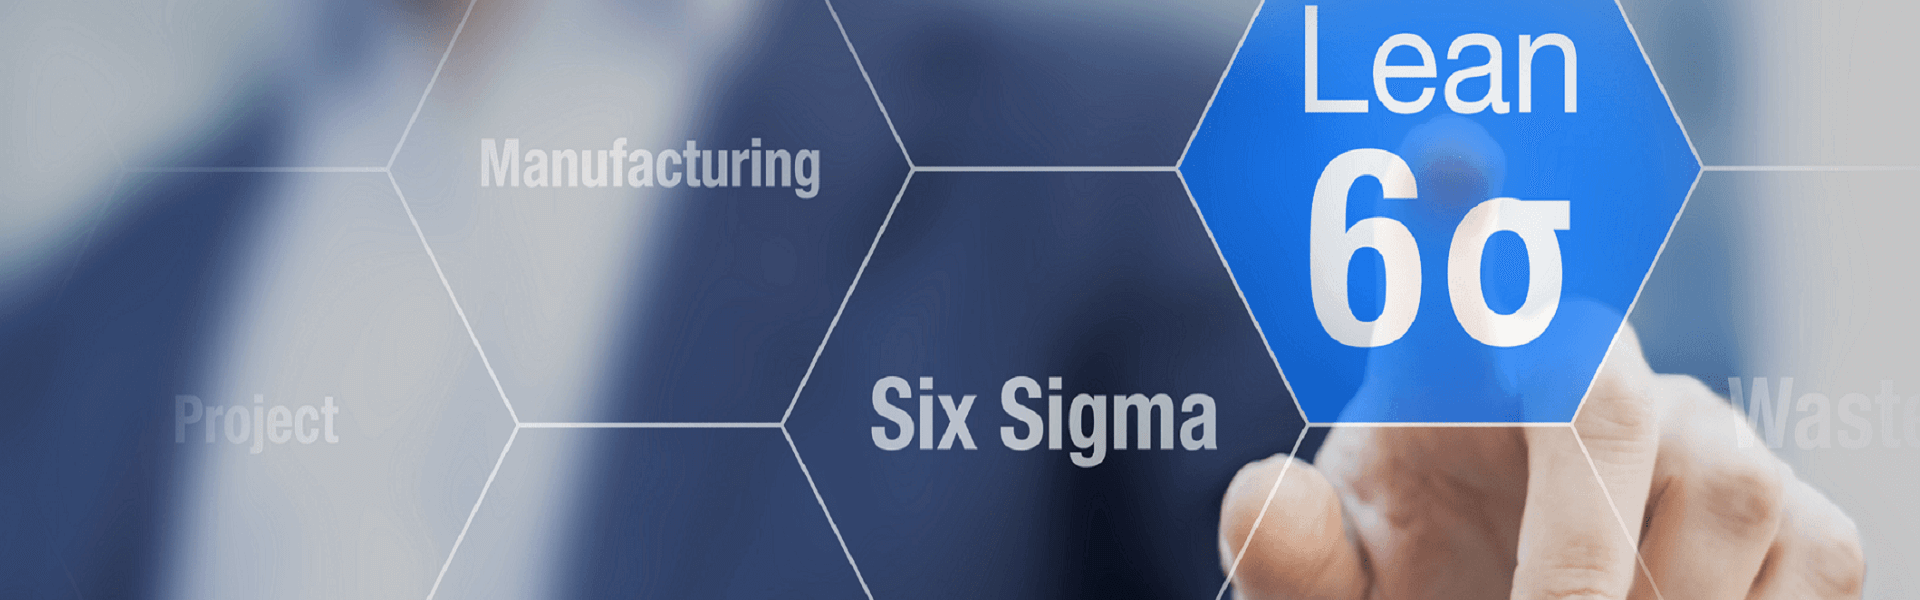 Lean Six Sigma Principles Training